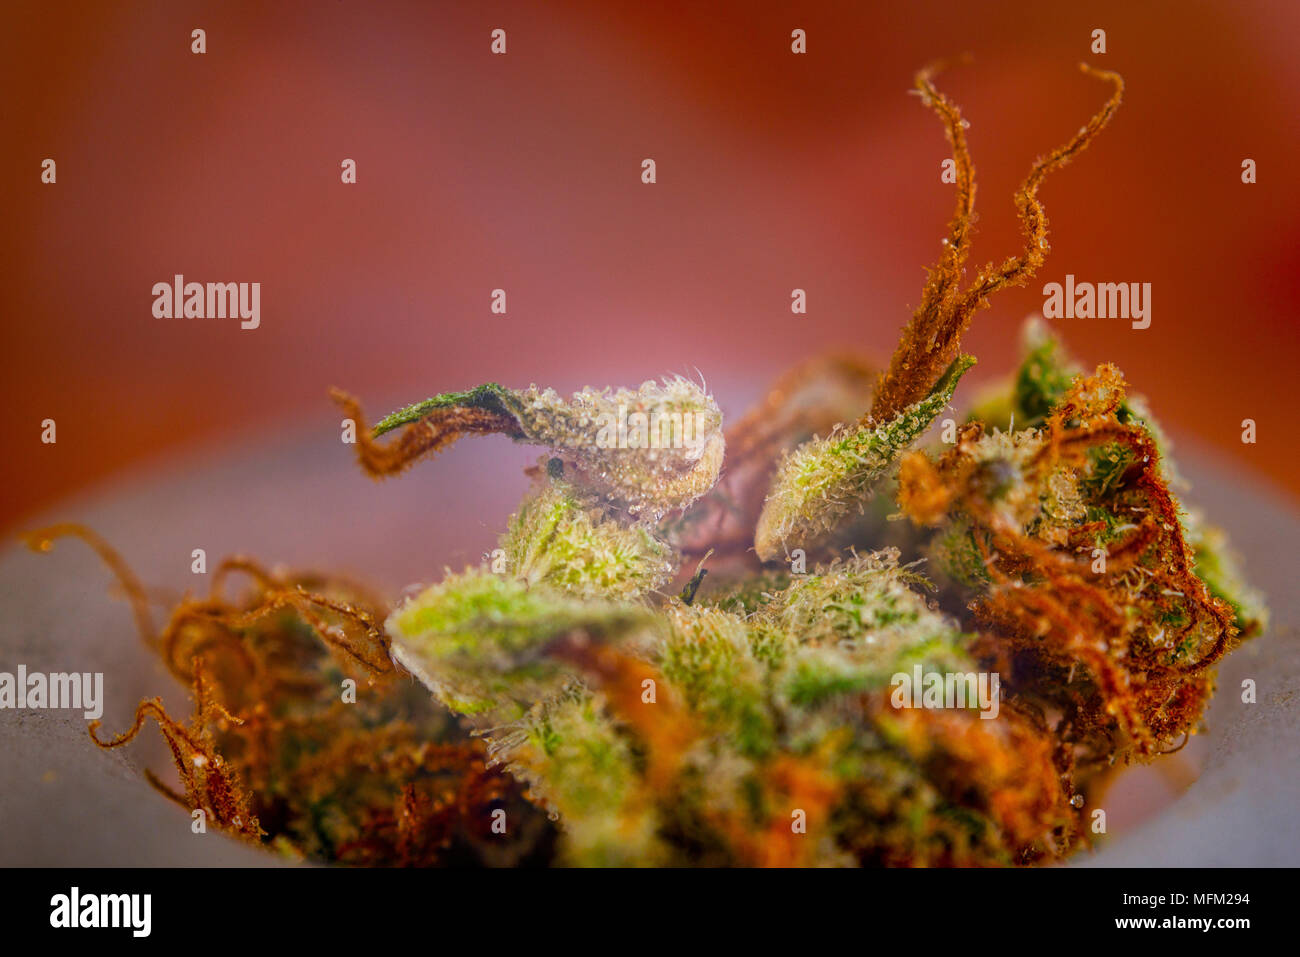 Macro detail of cannabis calyxes (sour tangie strain)  with visible trichomes - Medical marijuana concept - Stock Image